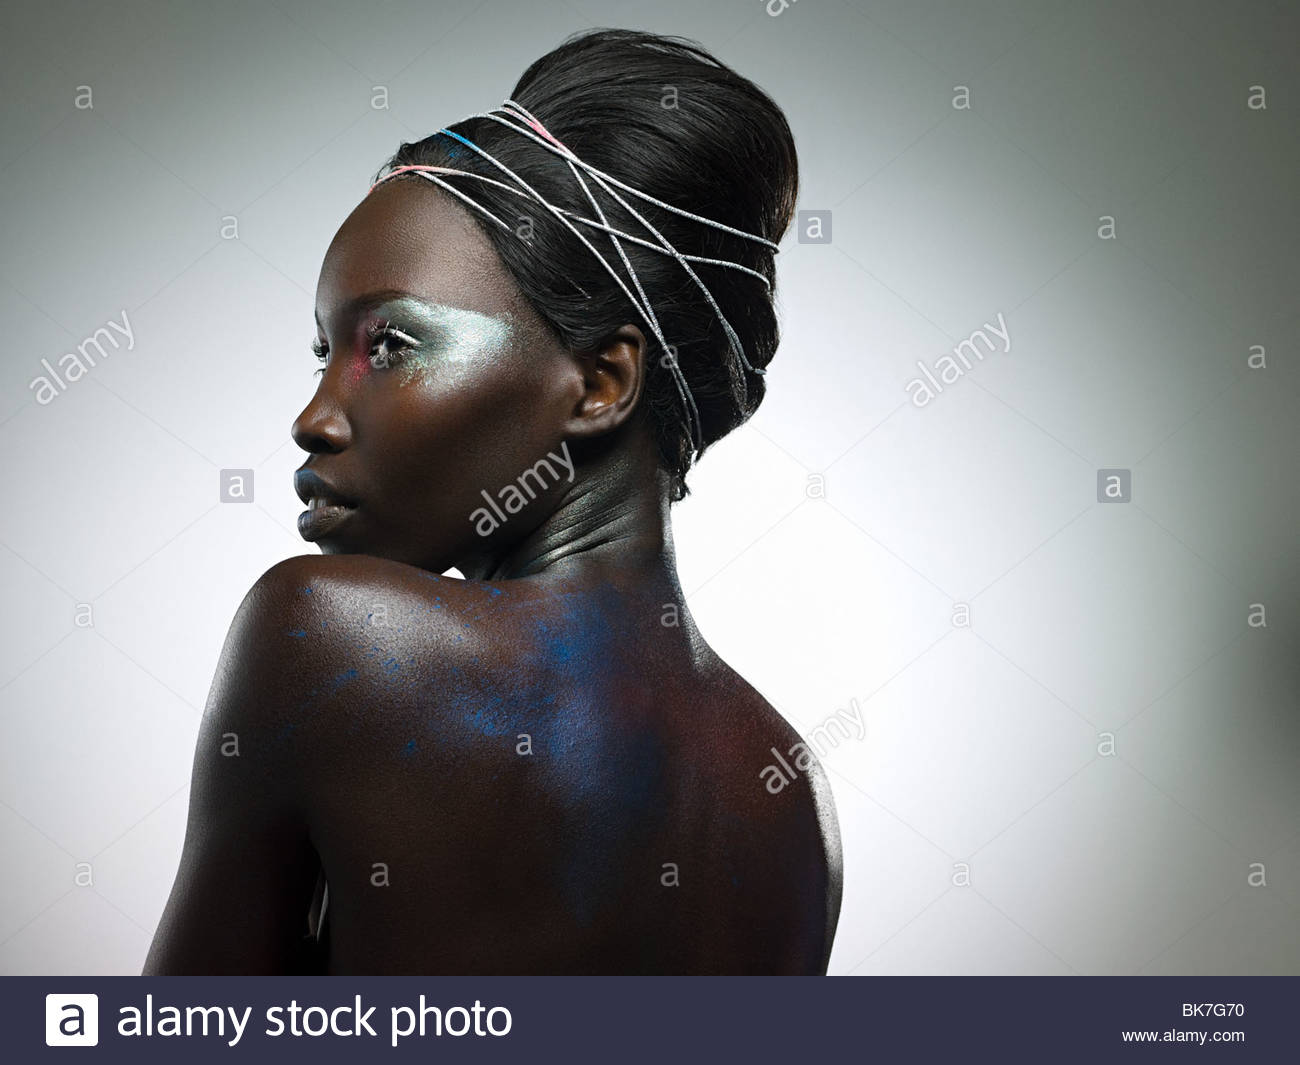 Young woman covered in metallic make up - Stock Image